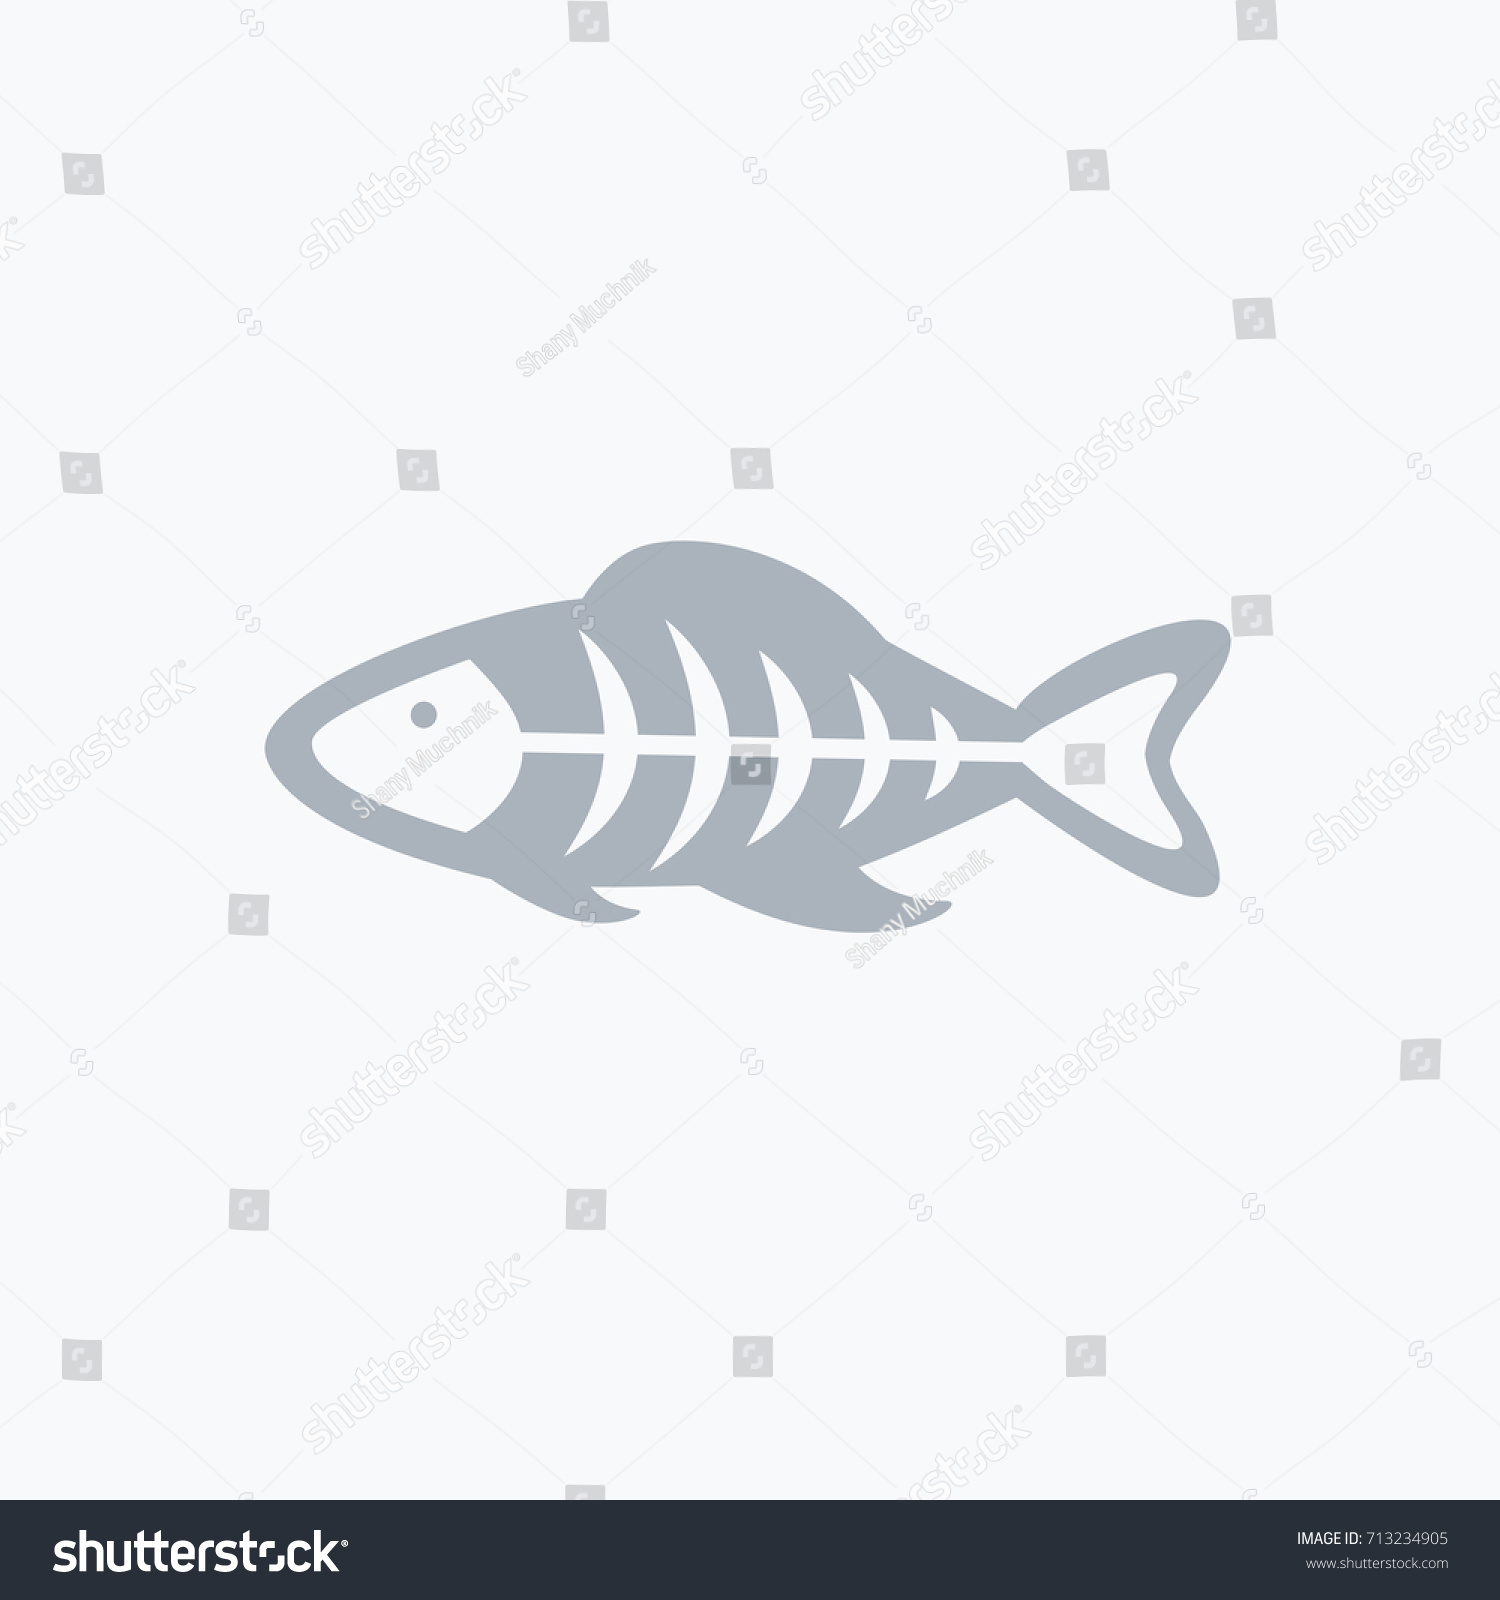 One Simple Clean Whole Fish Organs Stock Vector (Royalty Free ...